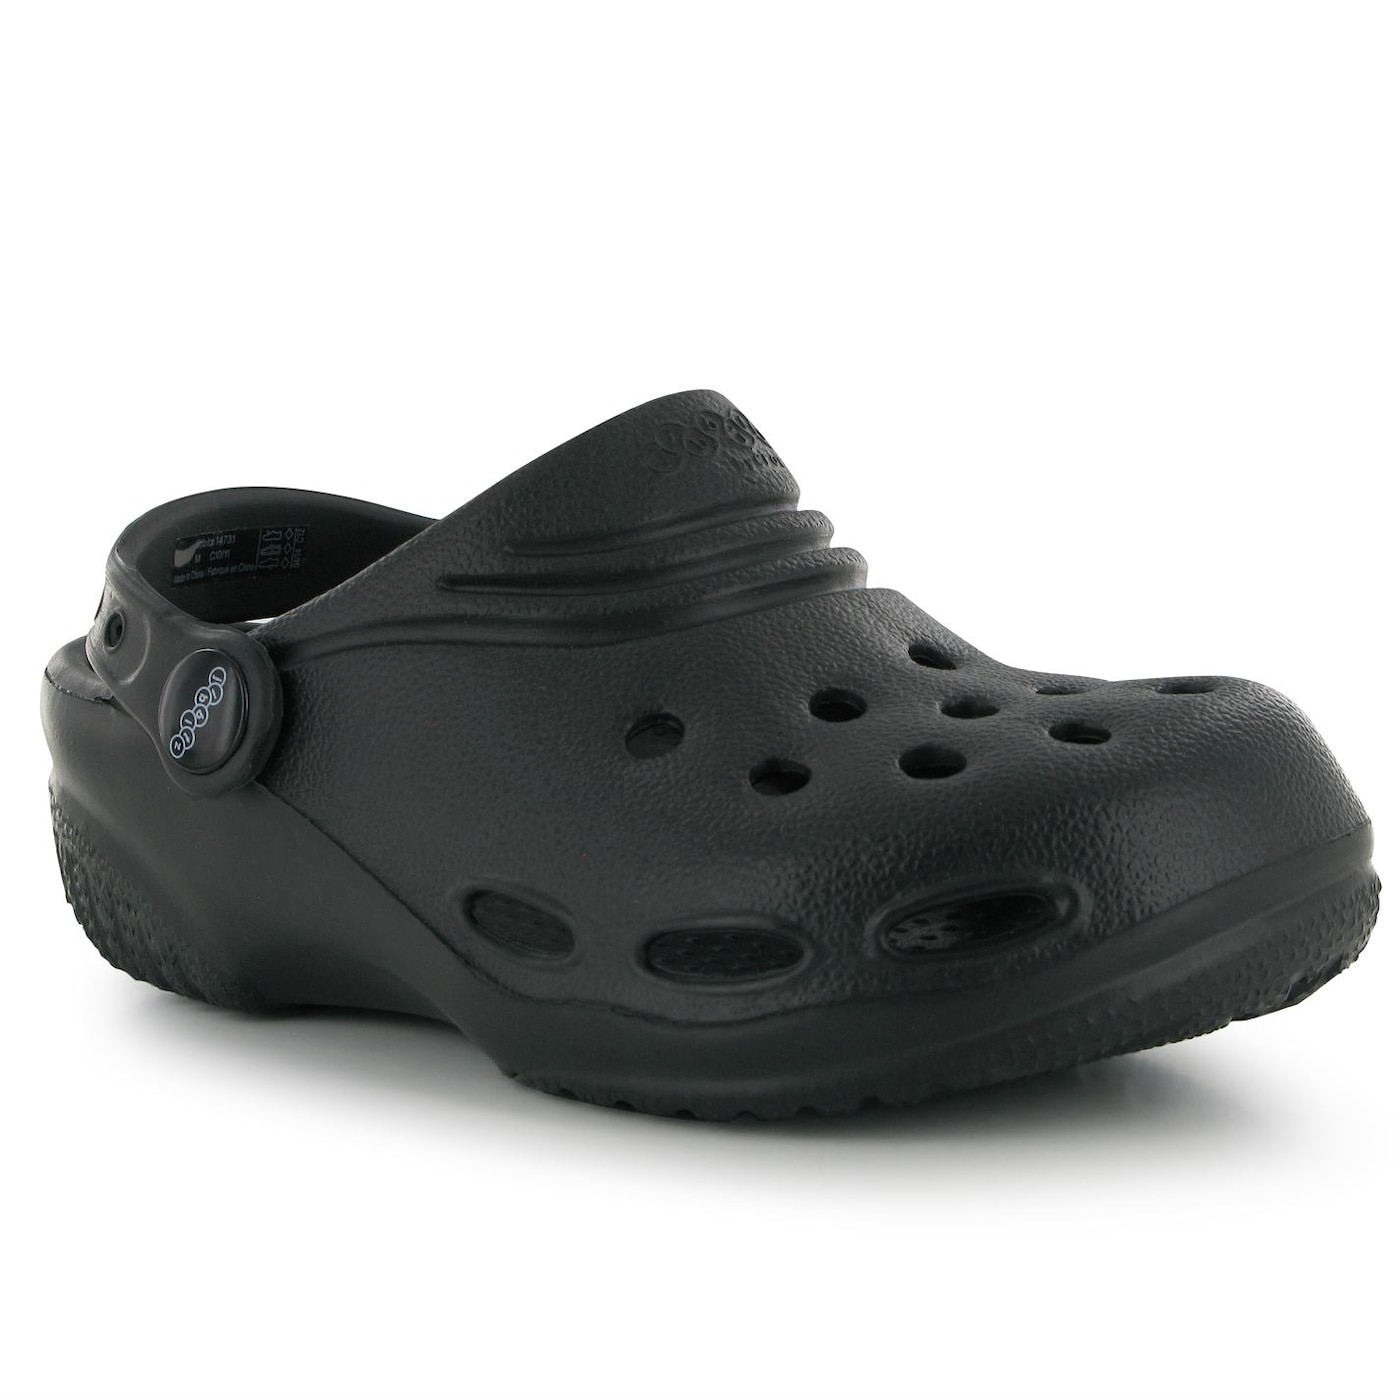 Crocs Jibbitz by Crocs Childrens Sandals